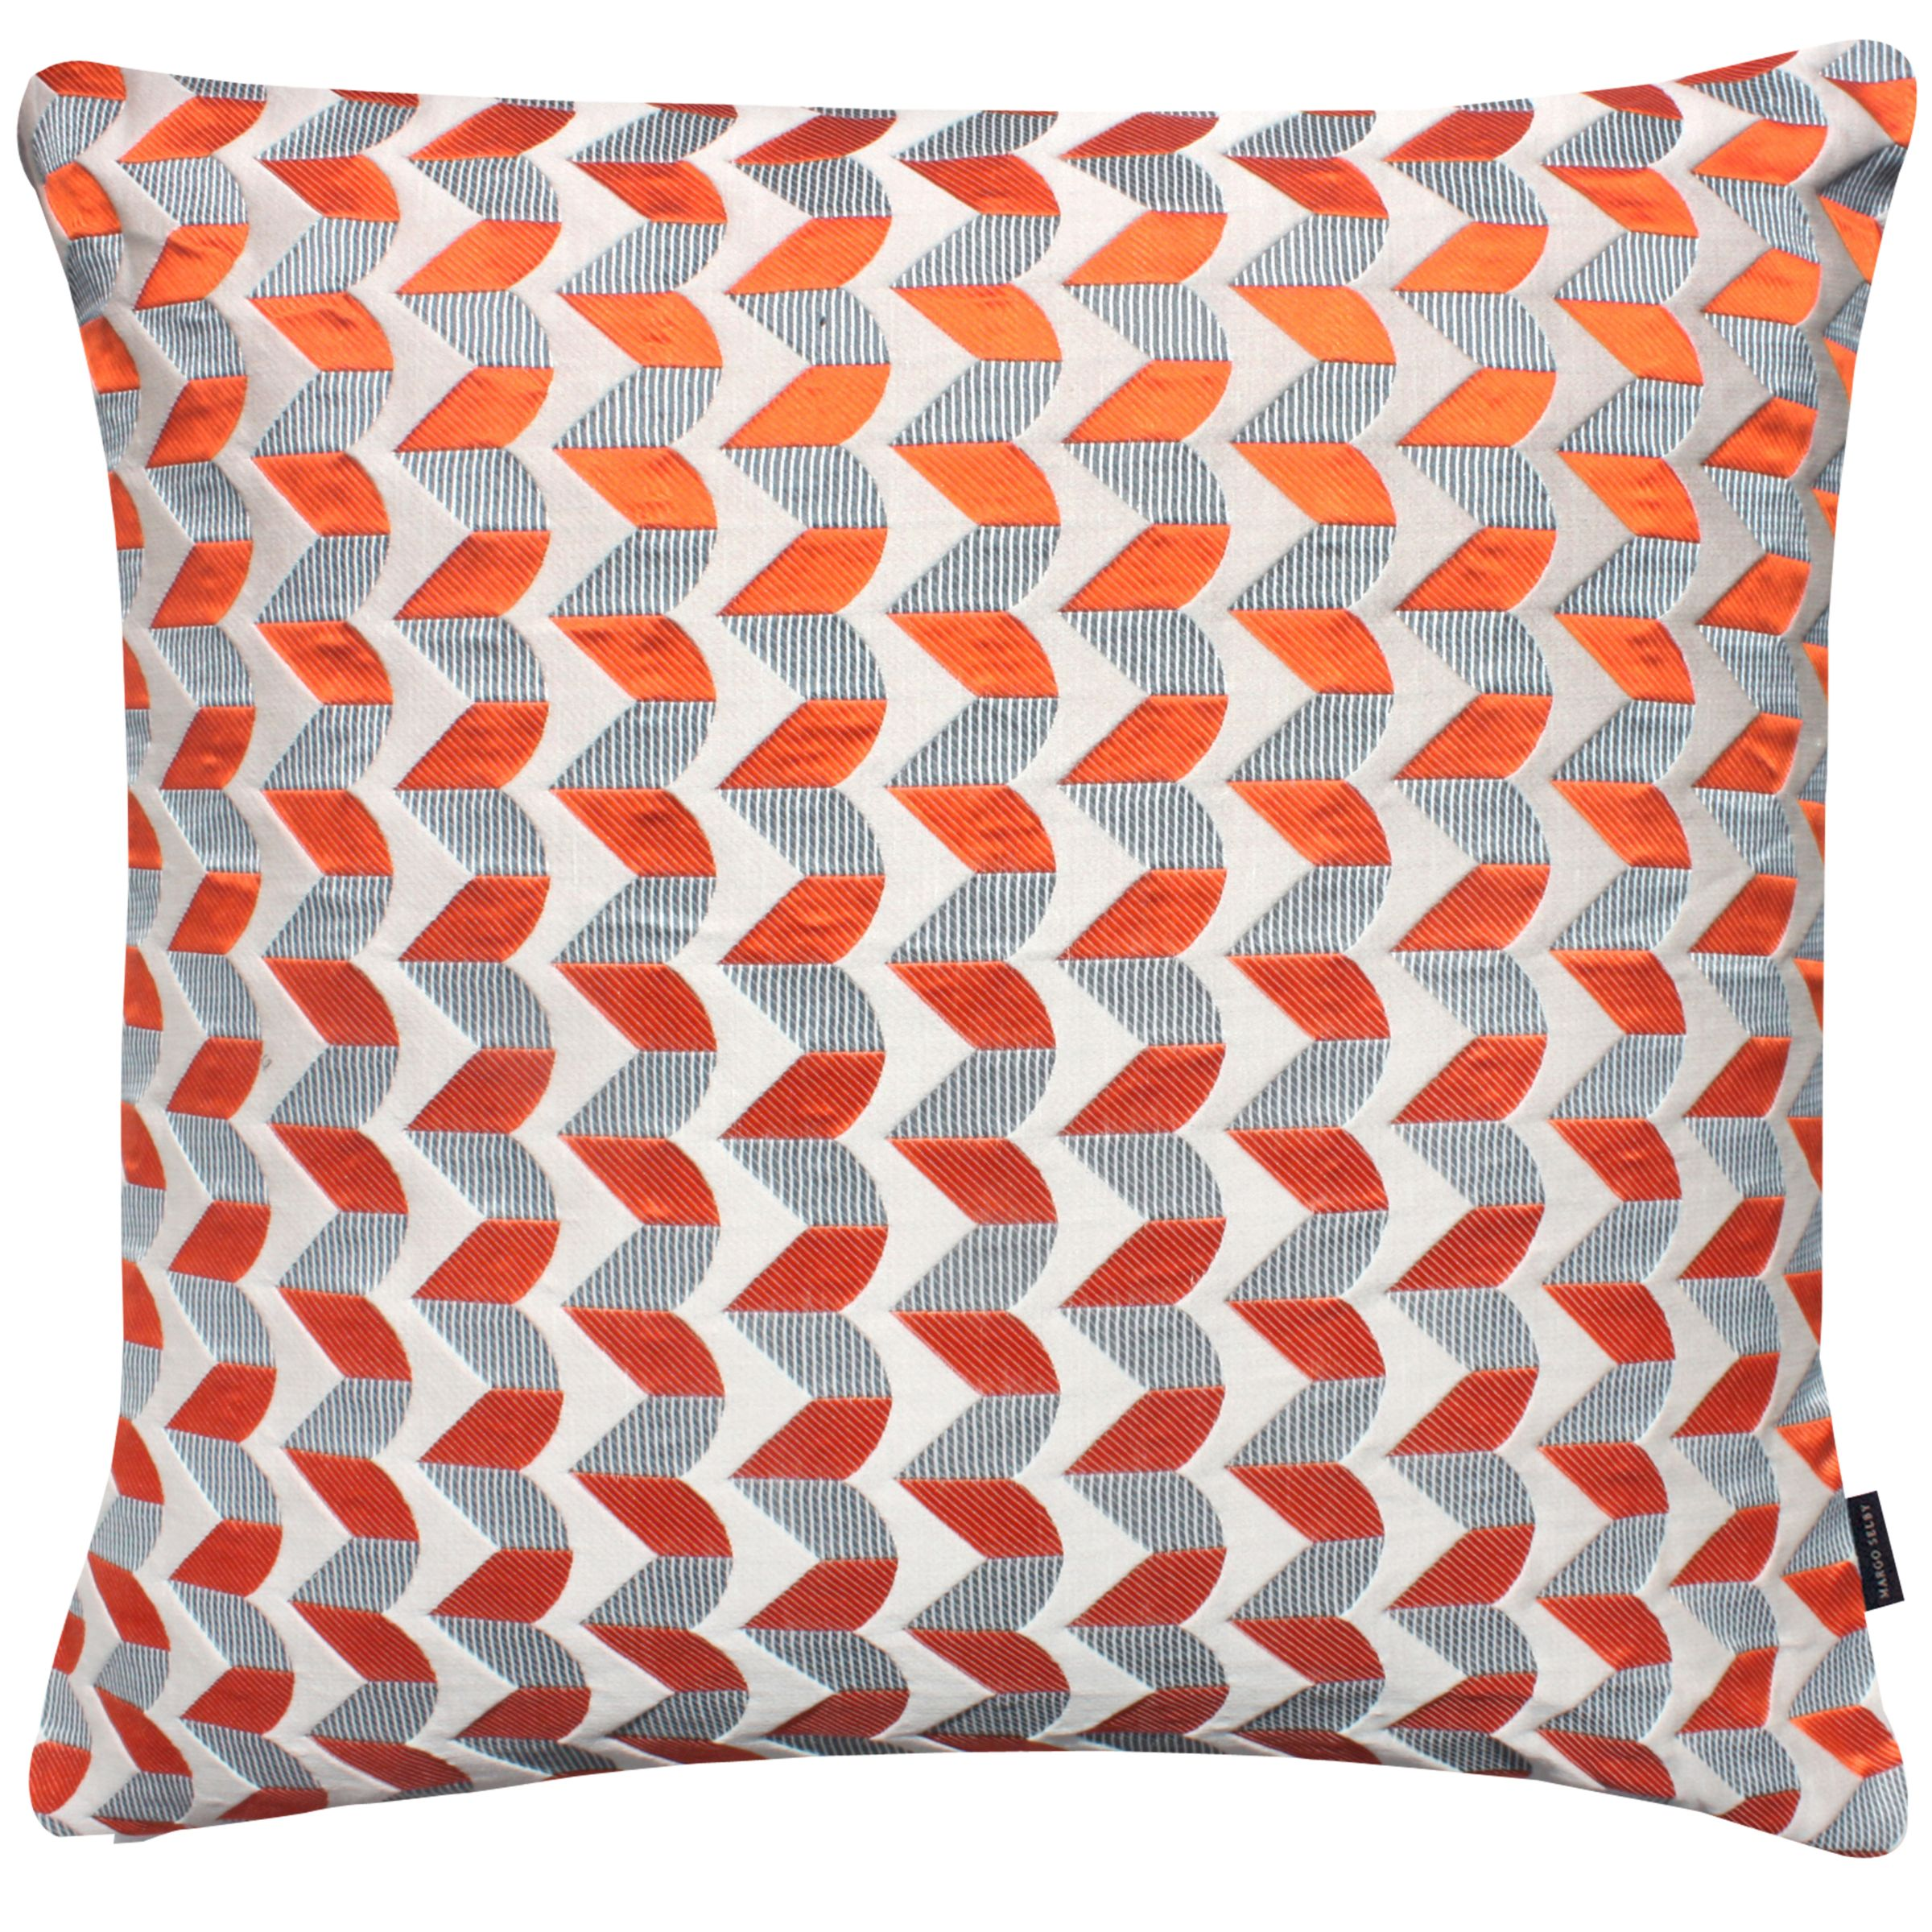 Margo Selby for John Lewis Margo Selby for John Lewis Tango Cushion, Multi